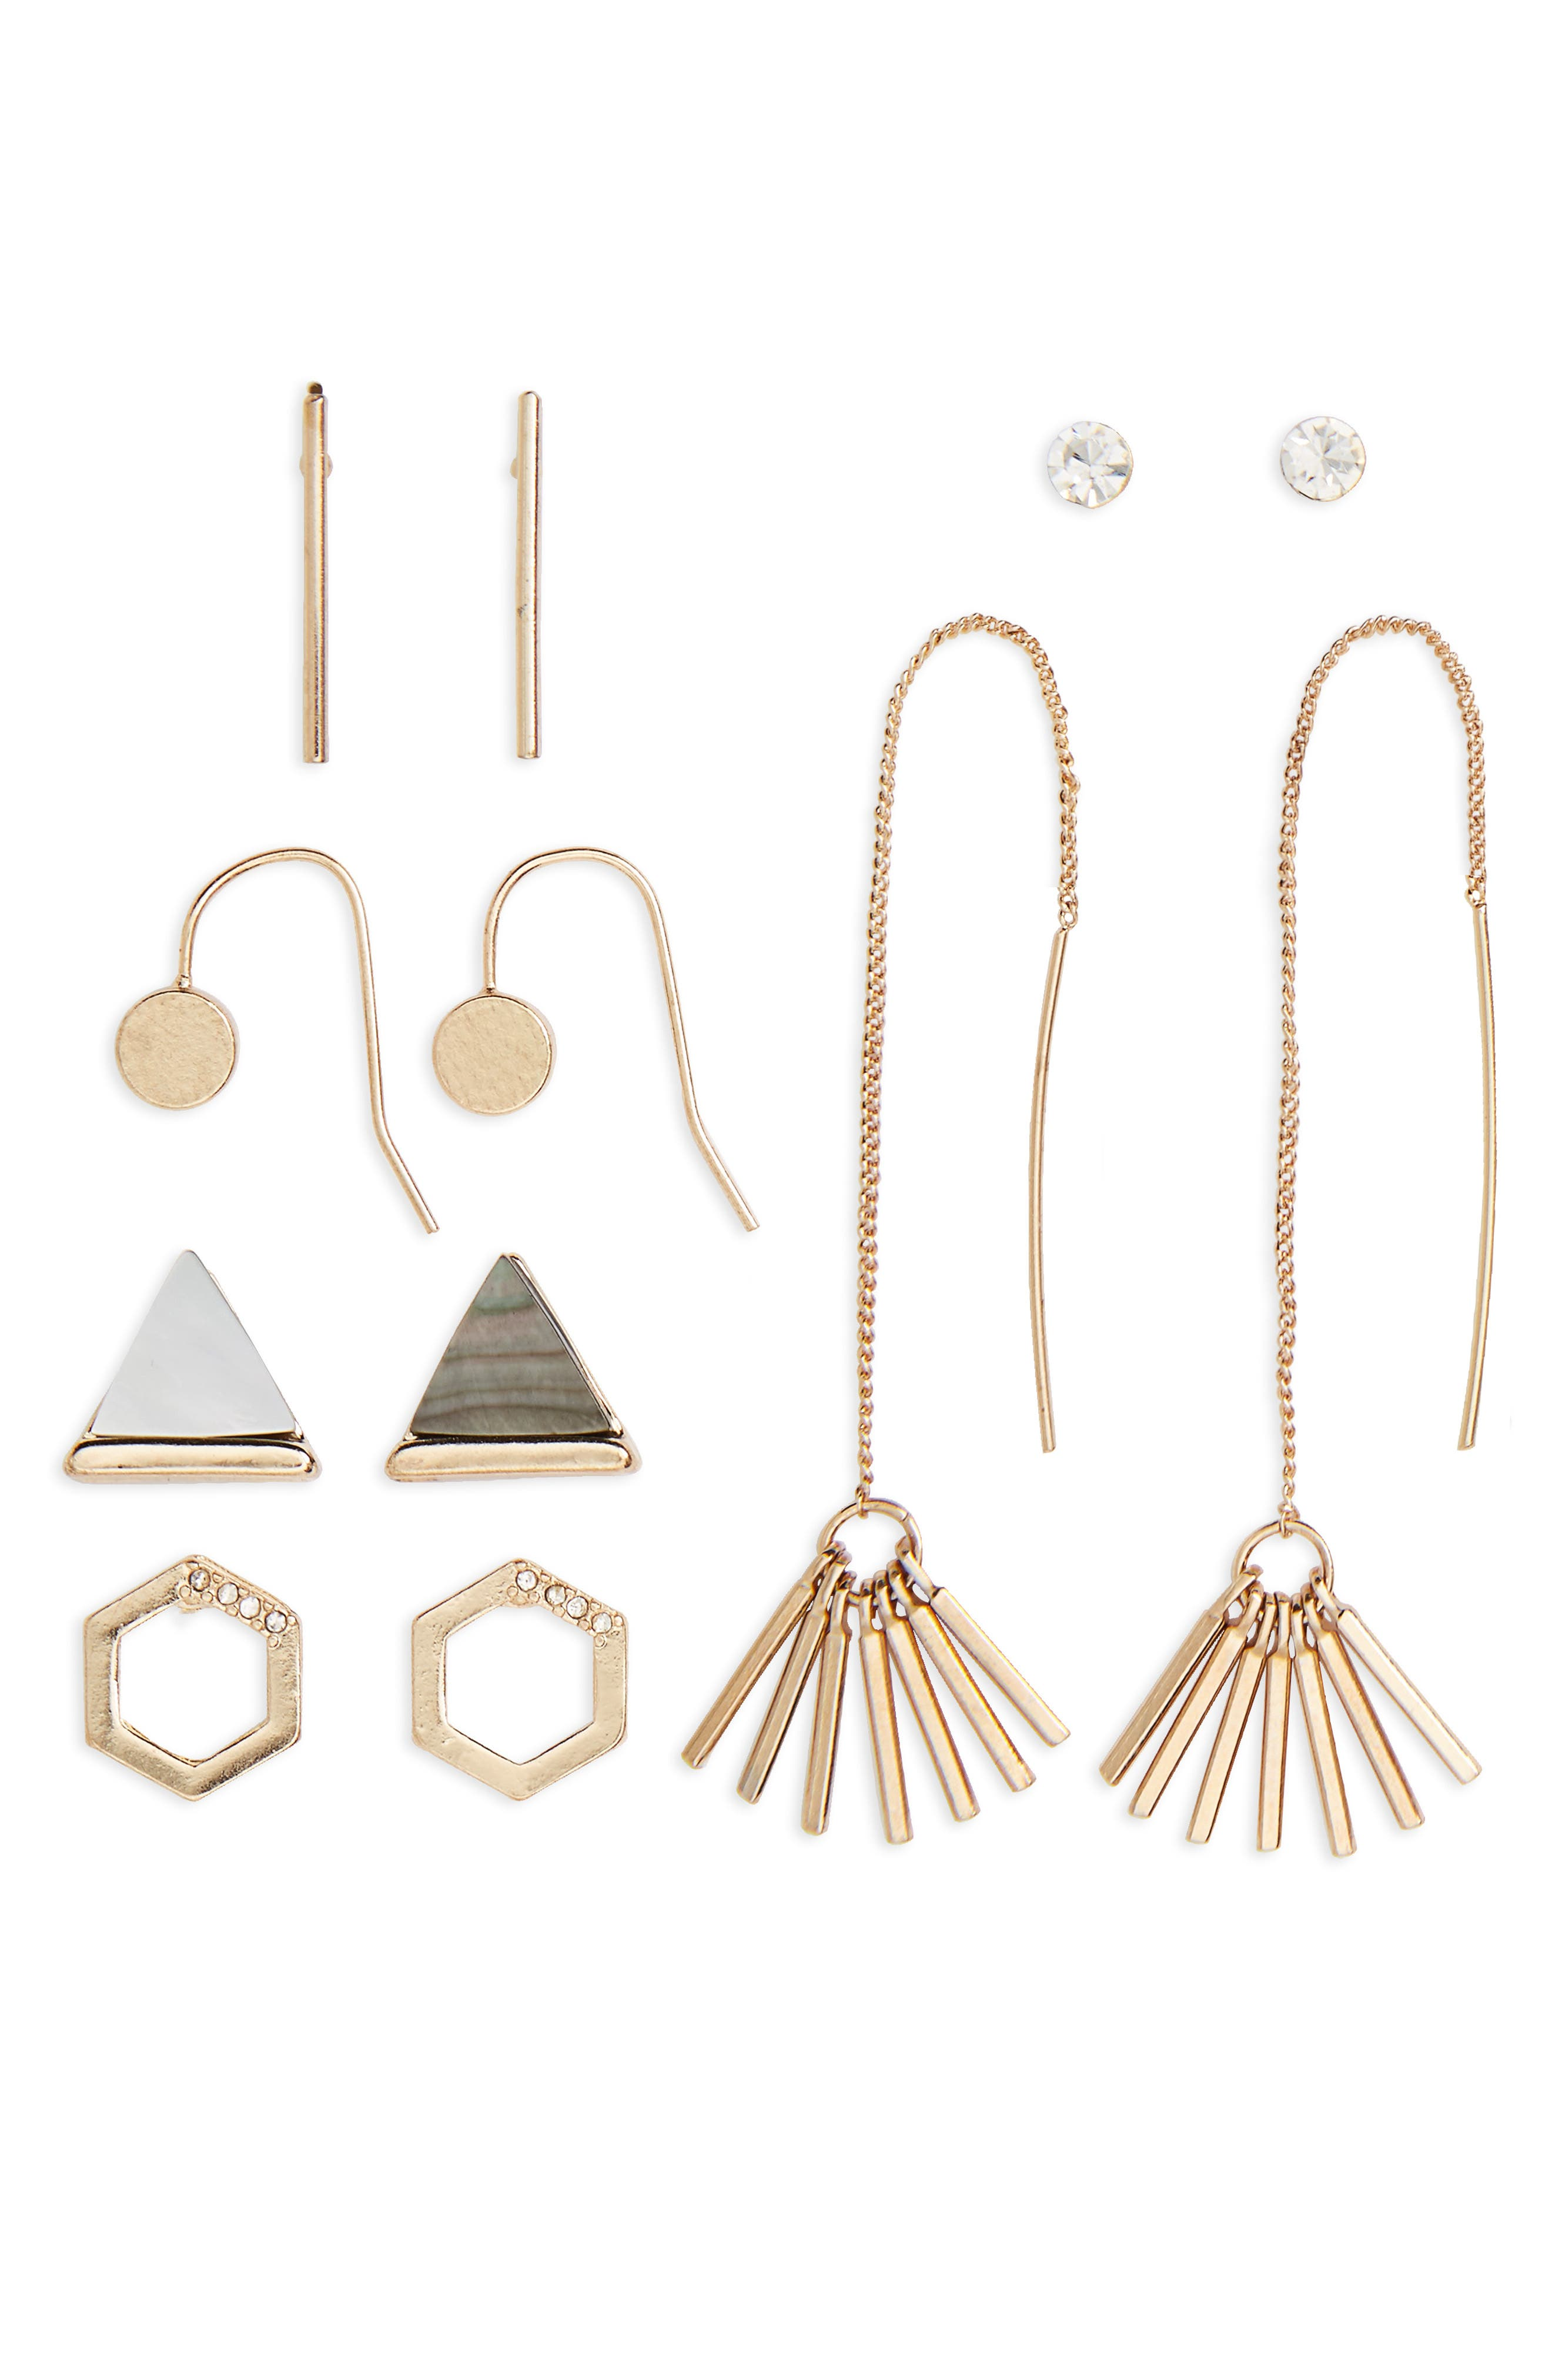 6-Pack Geometric Earrings,                         Main,                         color, Gold/ Crystal/ Stone